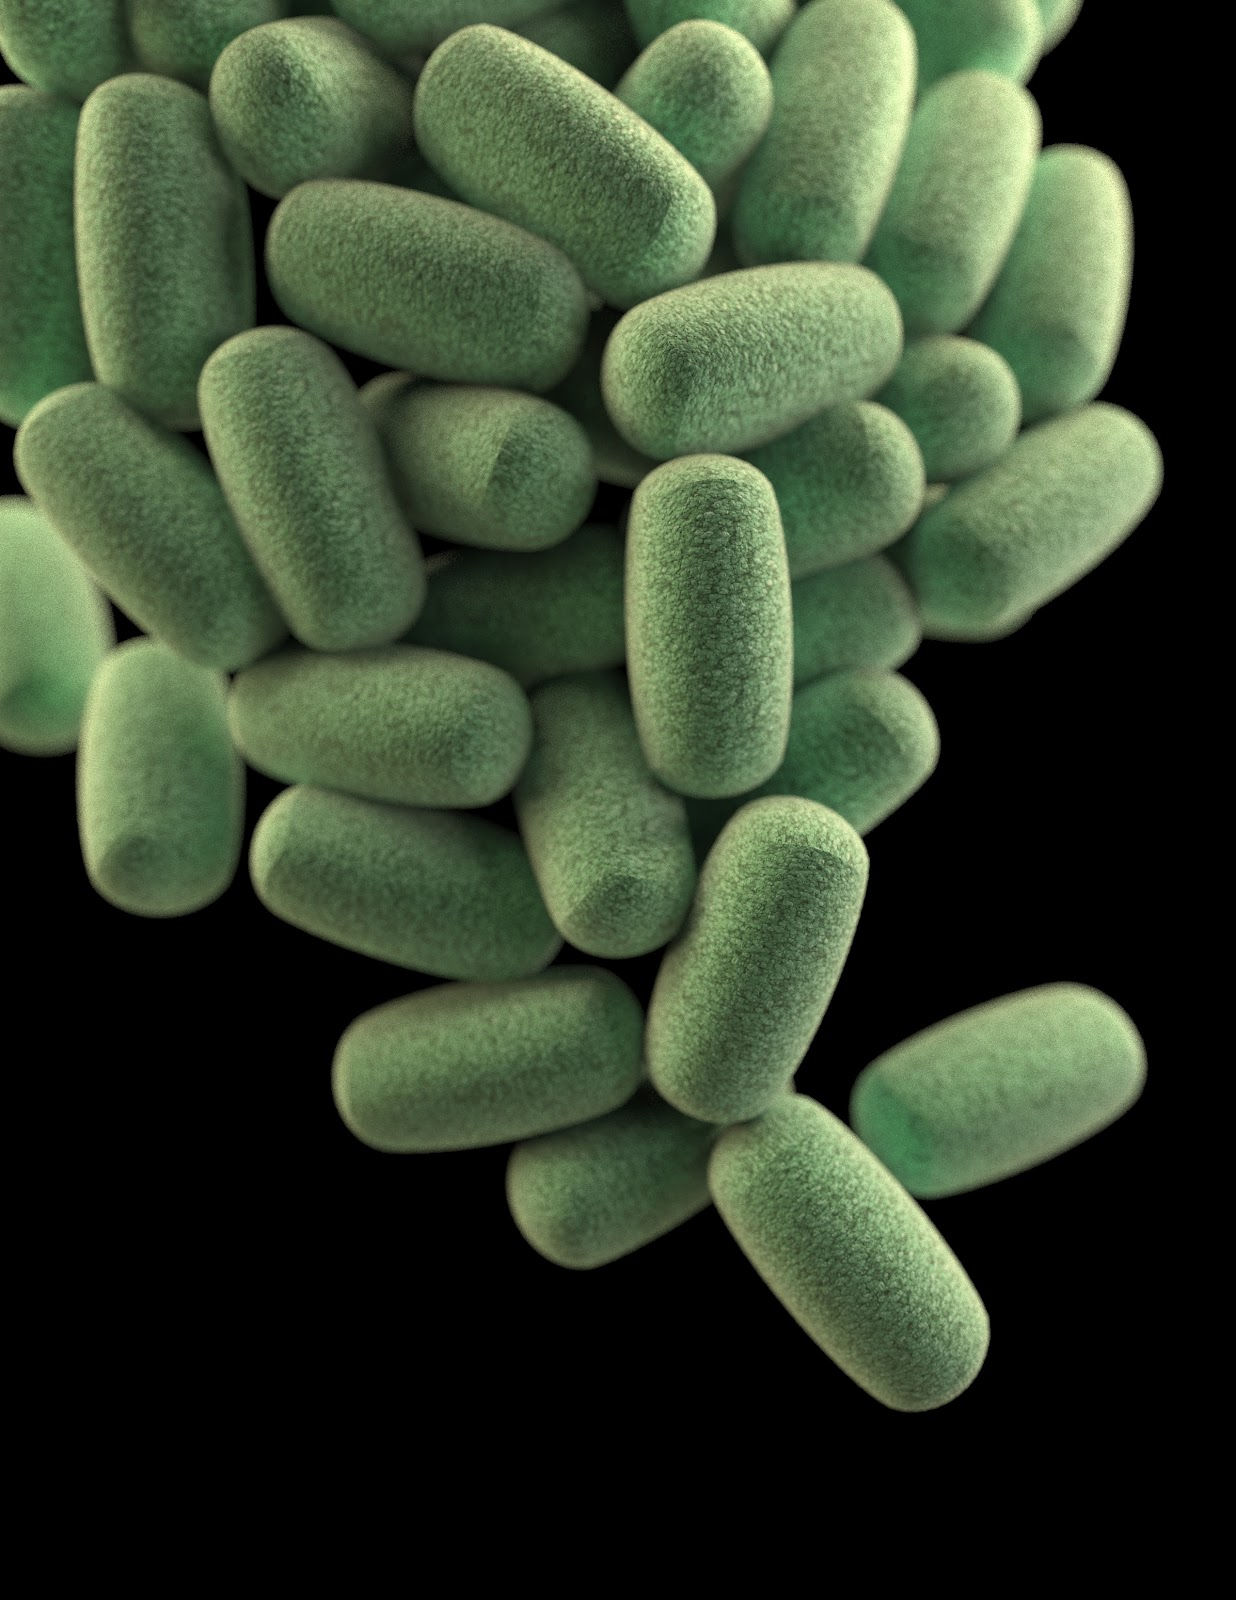 Green bacteria build up causing digestive disorders